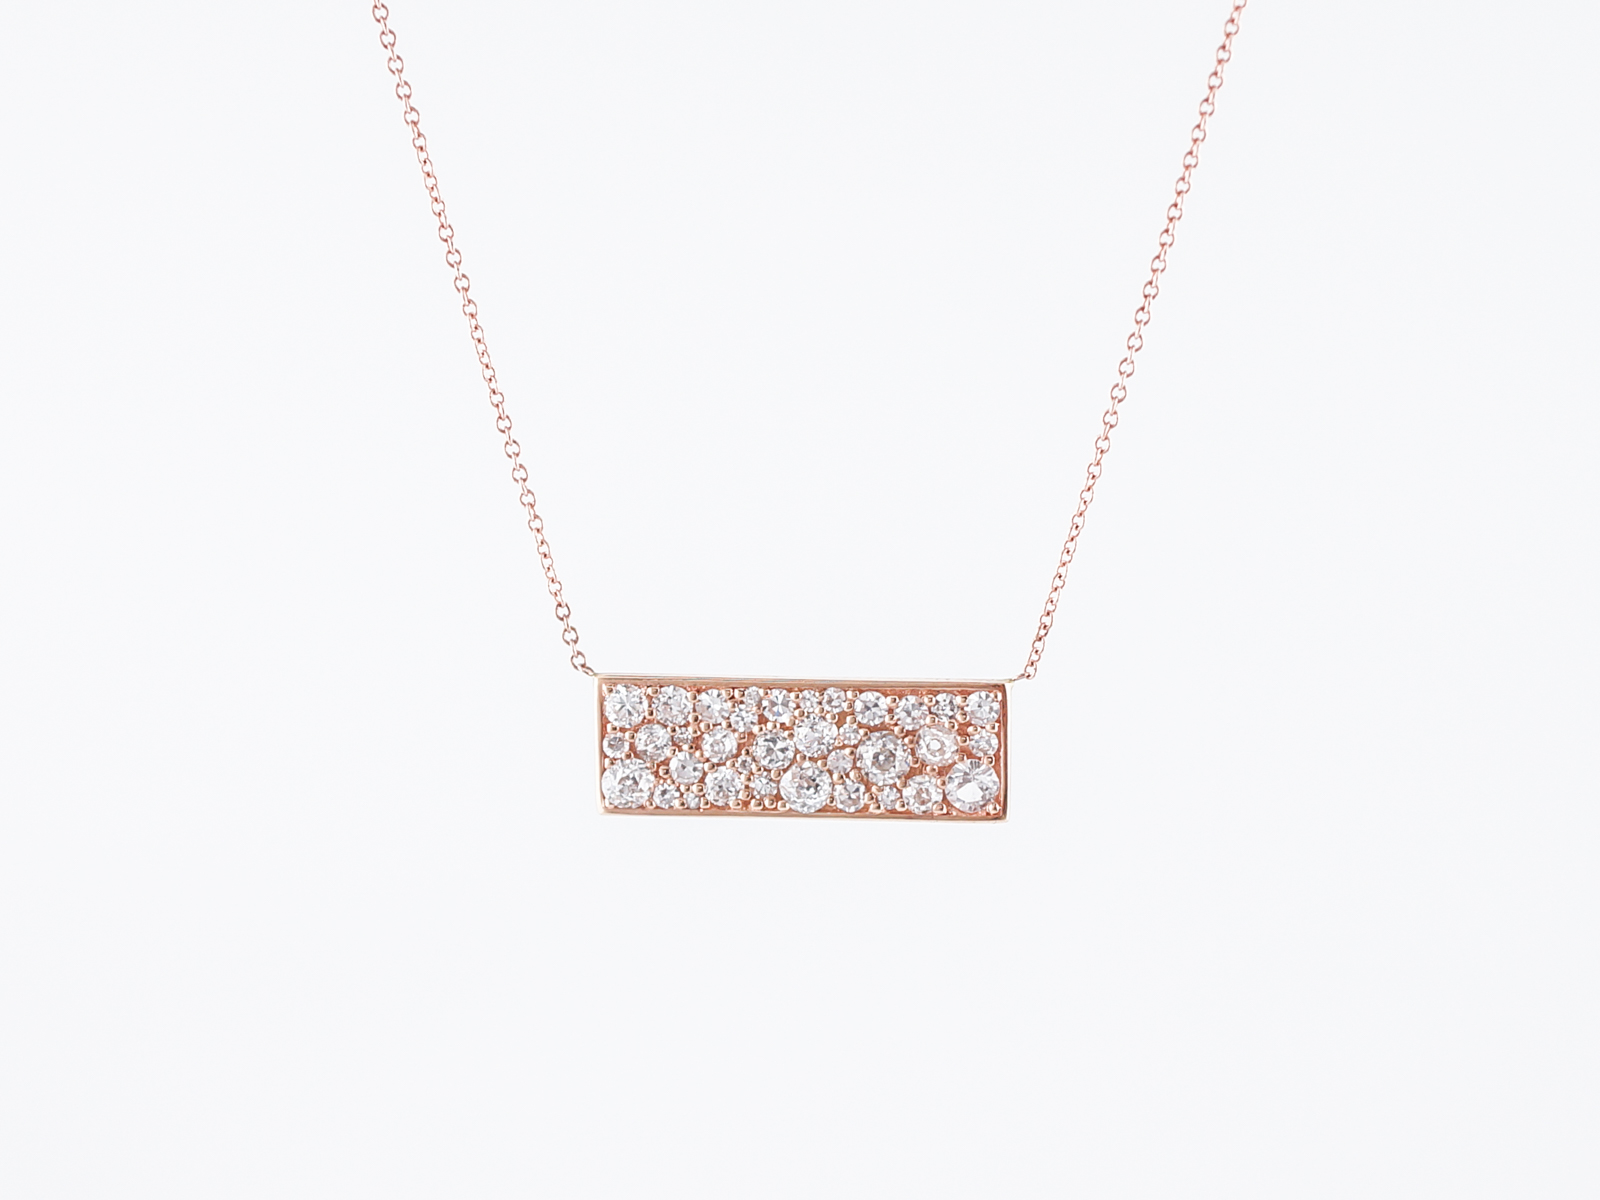 Modern Necklace 1.46 Single Cuts, Old European Cut, & Old Mine Cut Diamonds in 18k Rose Gold-2